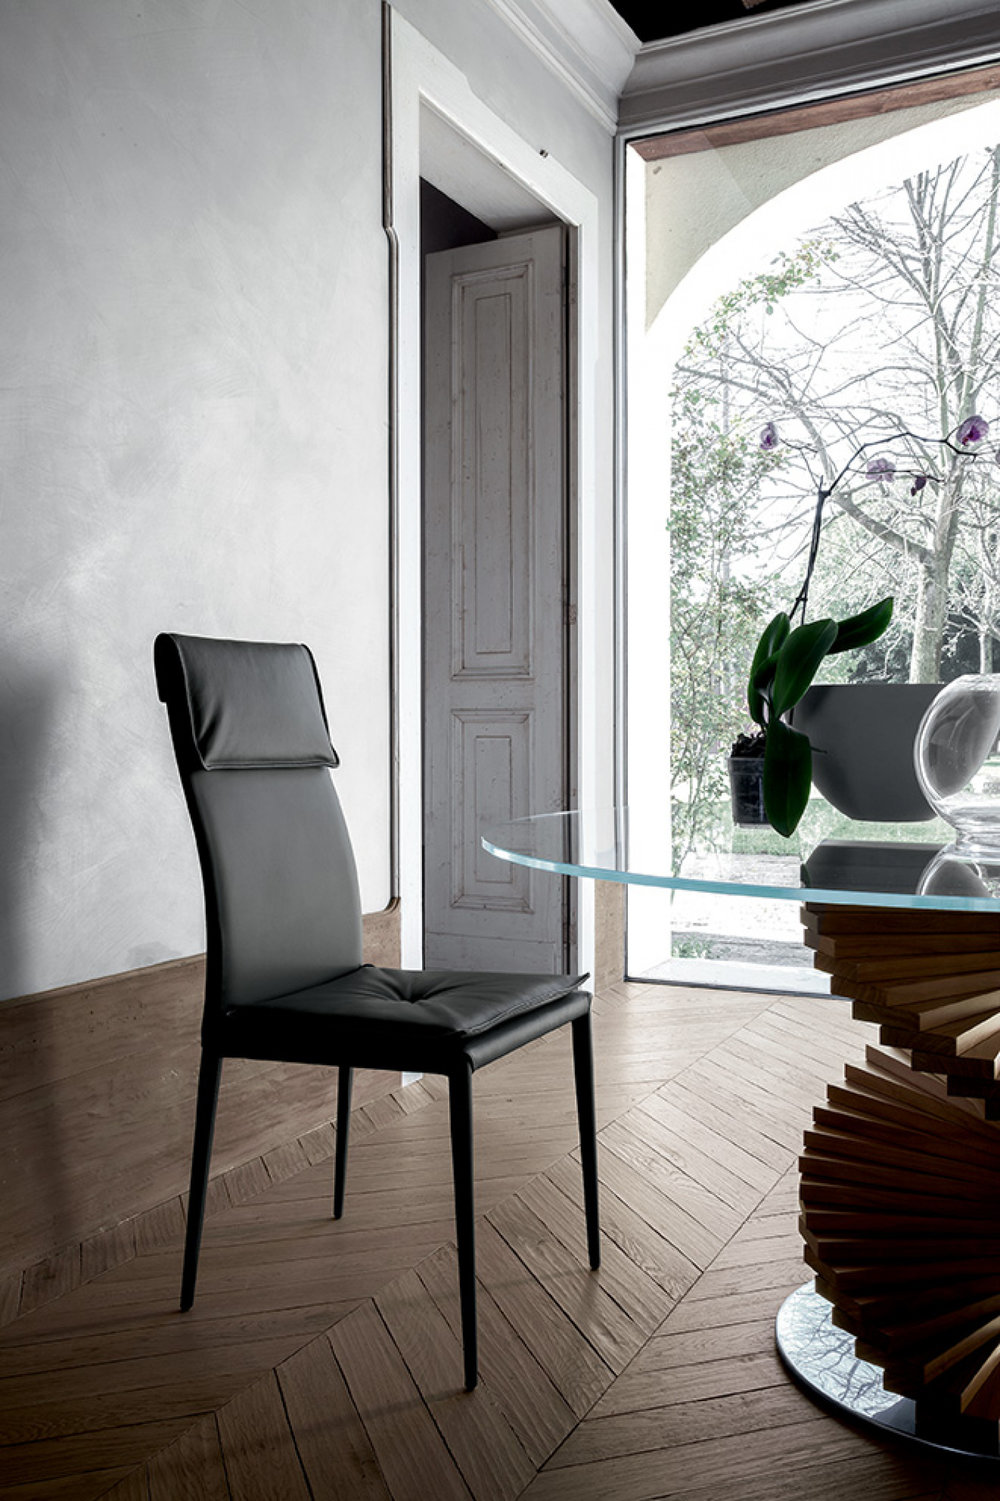 Indulge in elegance - Made in Italy by Tonin Casa, this chair with its simple yet refined elements creates an overall look that says 'sophisticated with a twist'.